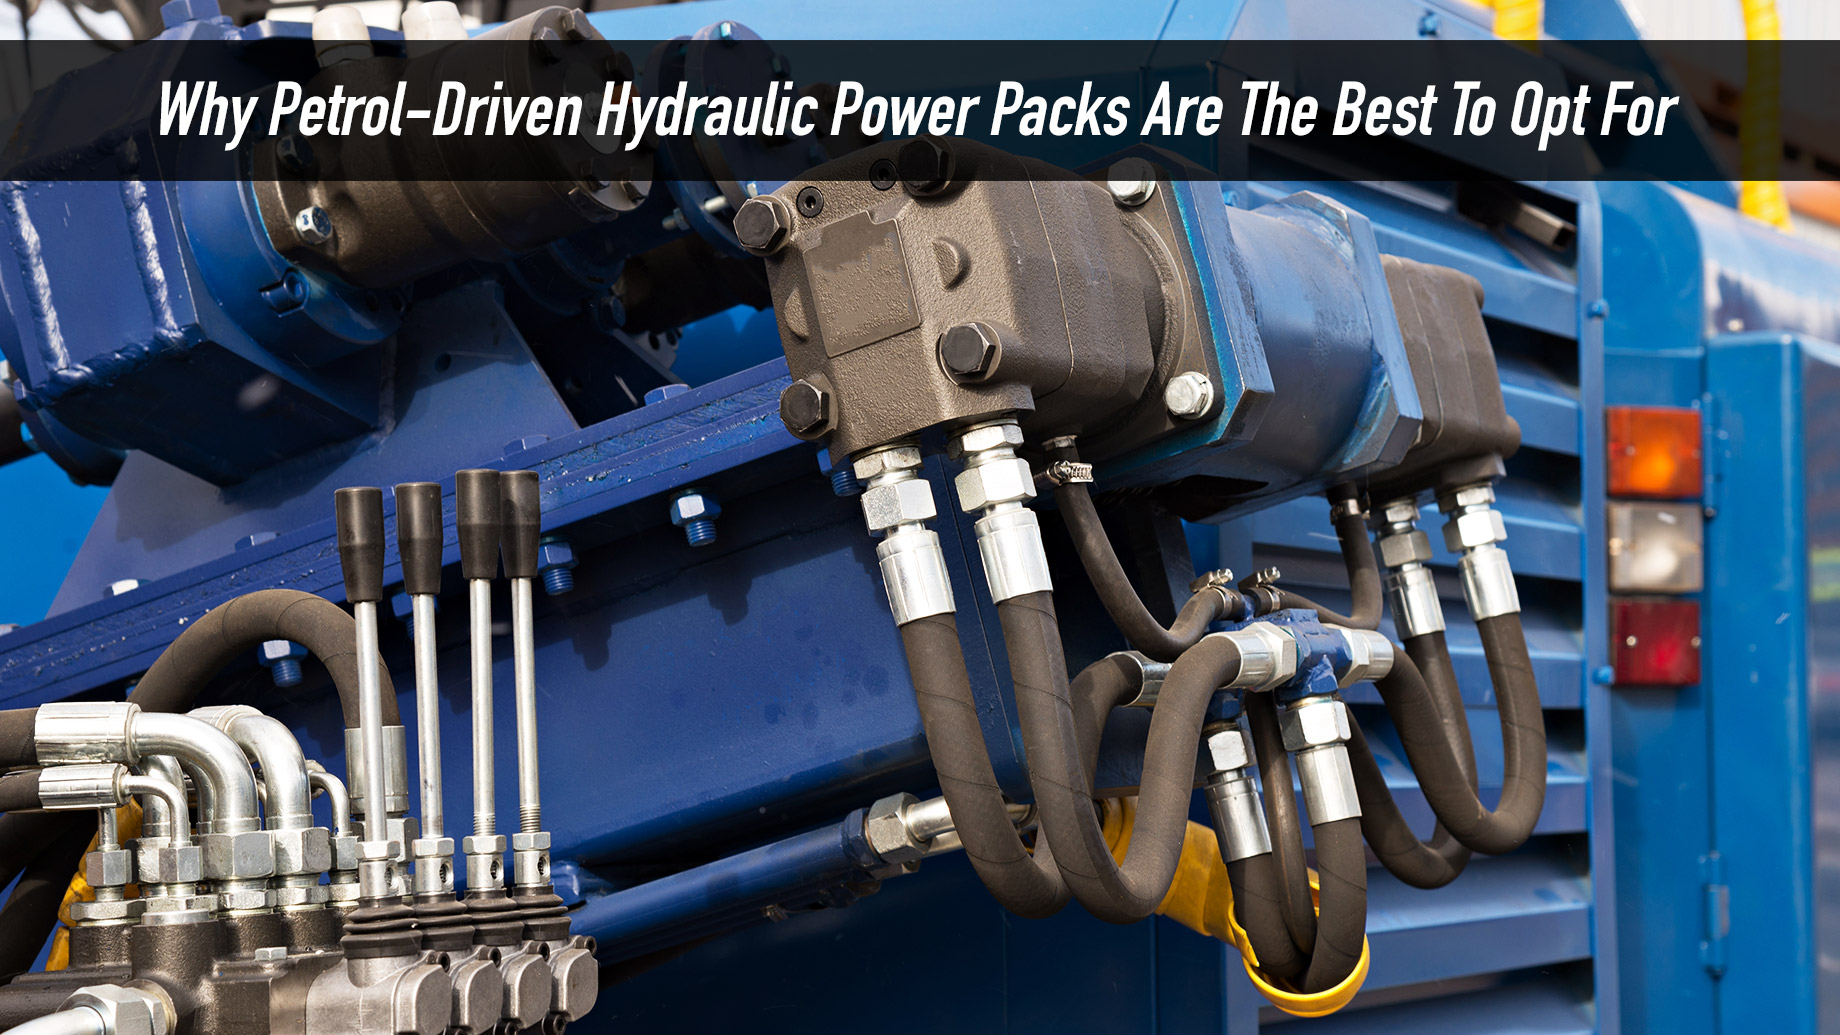 Why Petrol-Driven Hydraulic Power Packs Are The Best To Opt For